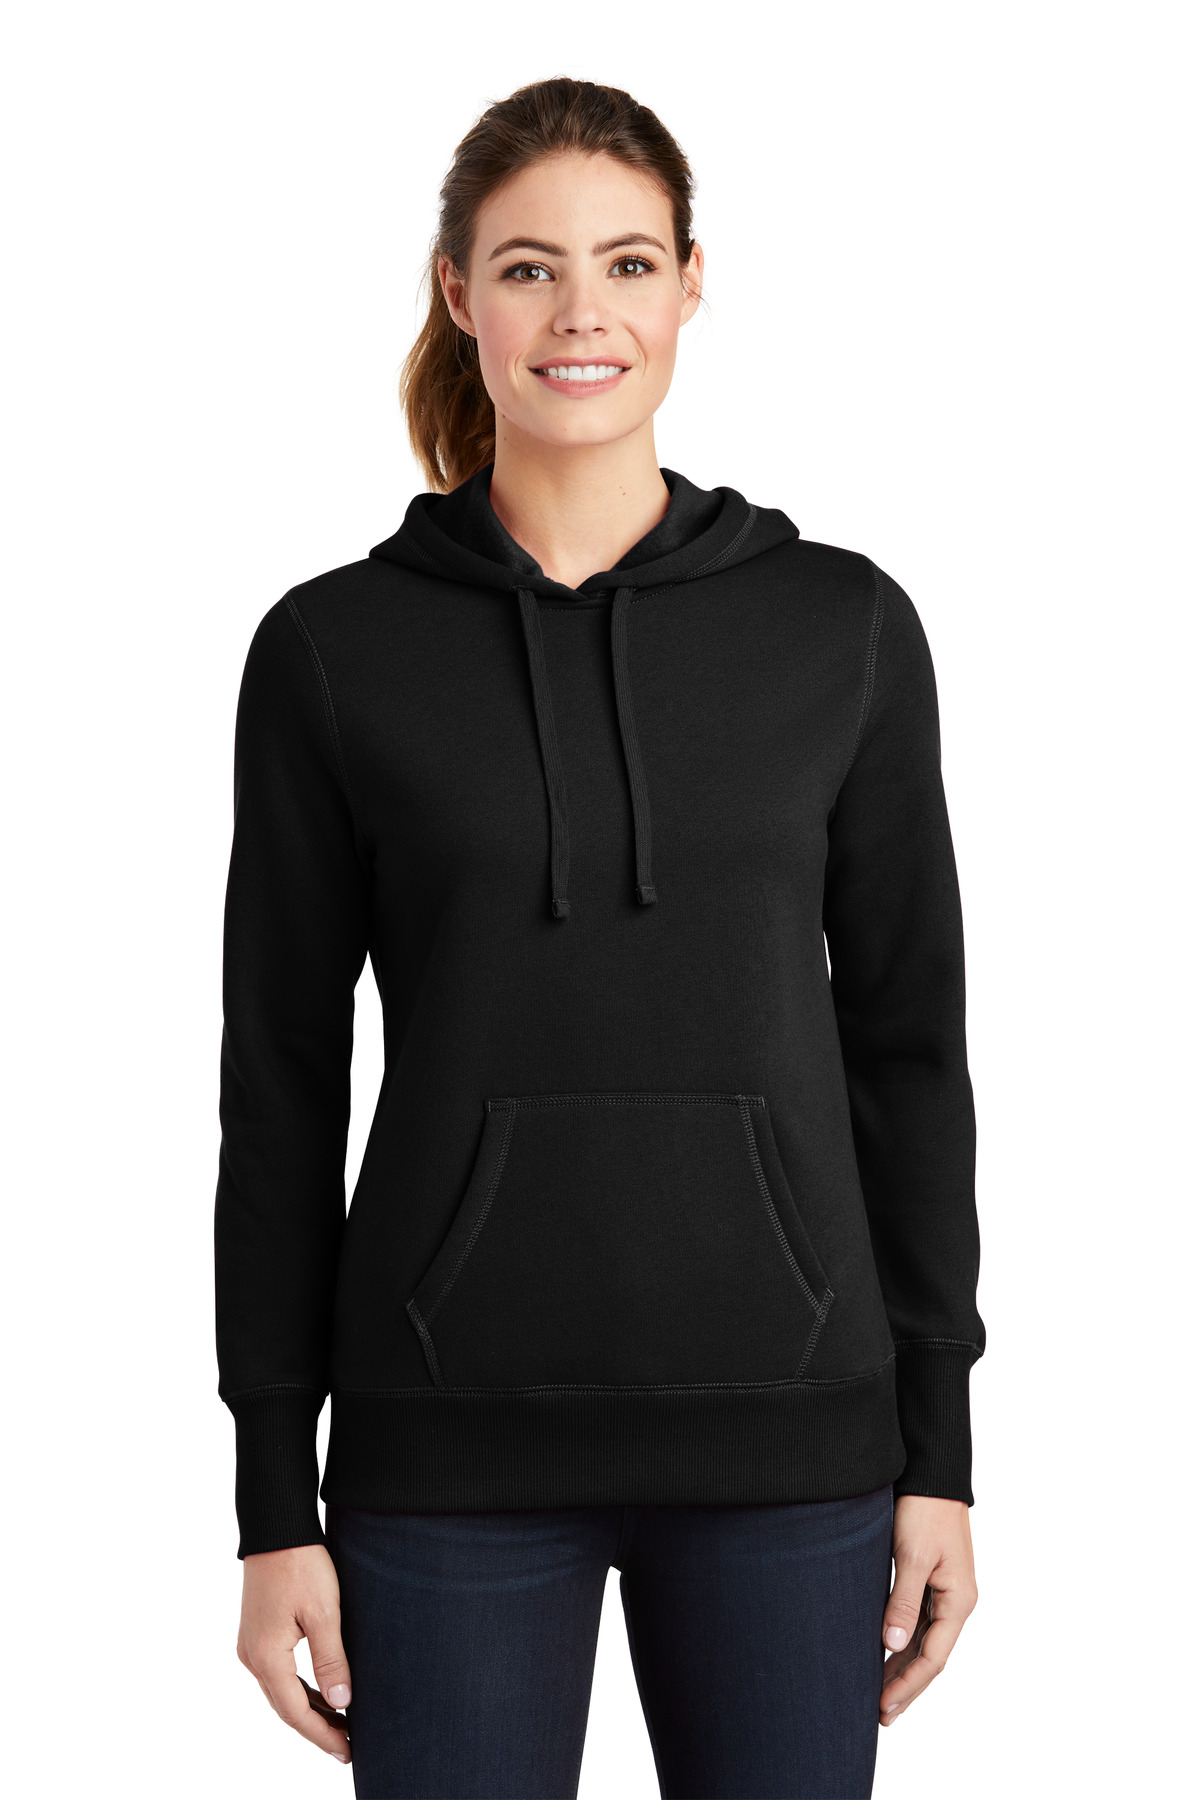 Sport-Tek ®  Ladies Pullover Hooded Sweatshirt. LST254 - Black